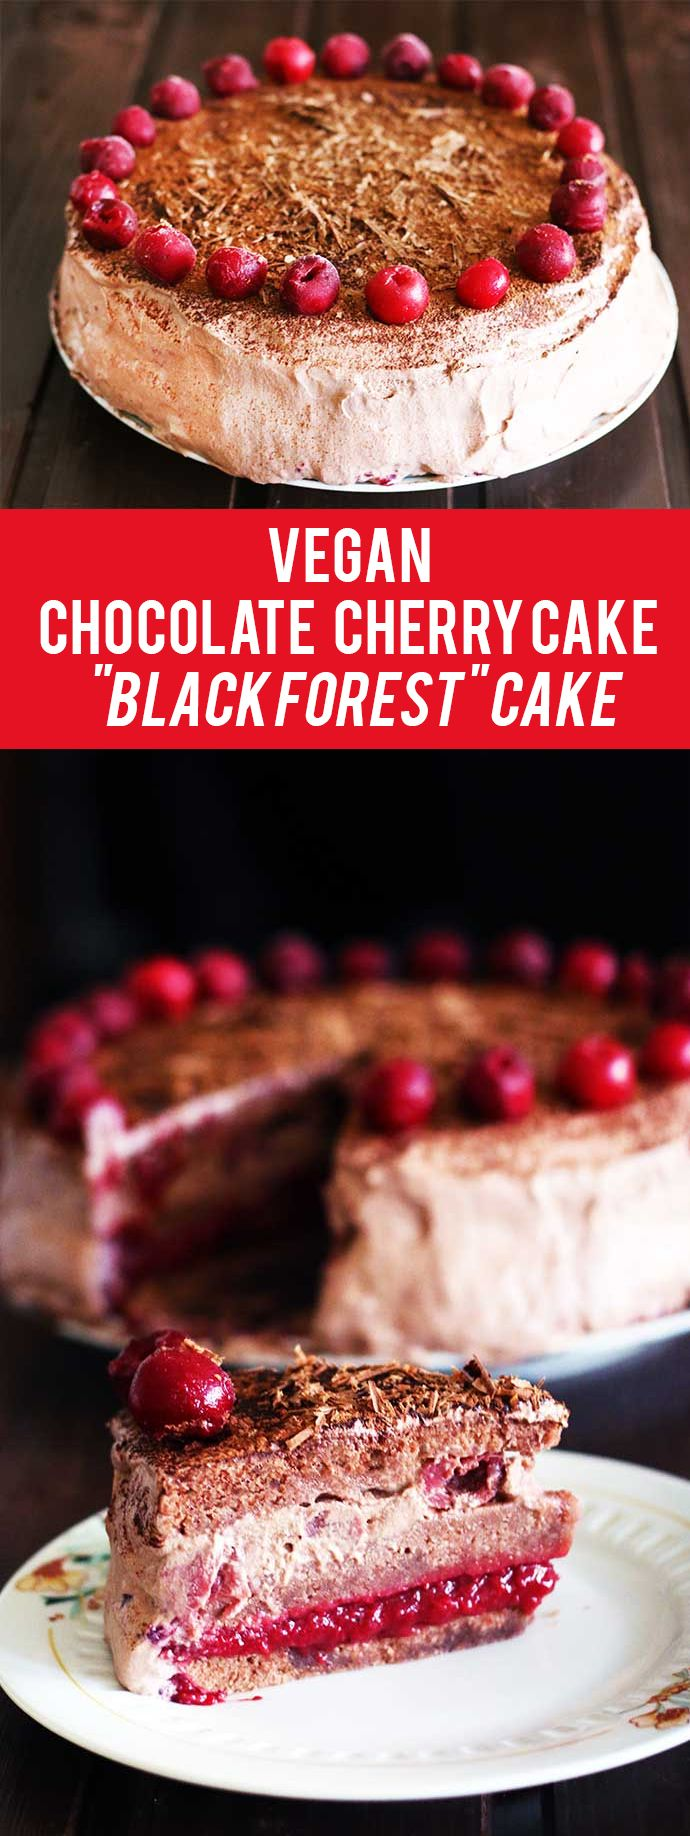 "This vegan chocolate cherry cake has a rich chocolate flavor that goes perfectly with the subtle sour taste given by the sour cherries. It's similar to the popular ""Black Forest"" cake recipe.  http://gourmandelle.com/vegan-chocolate-cherry-cake/"